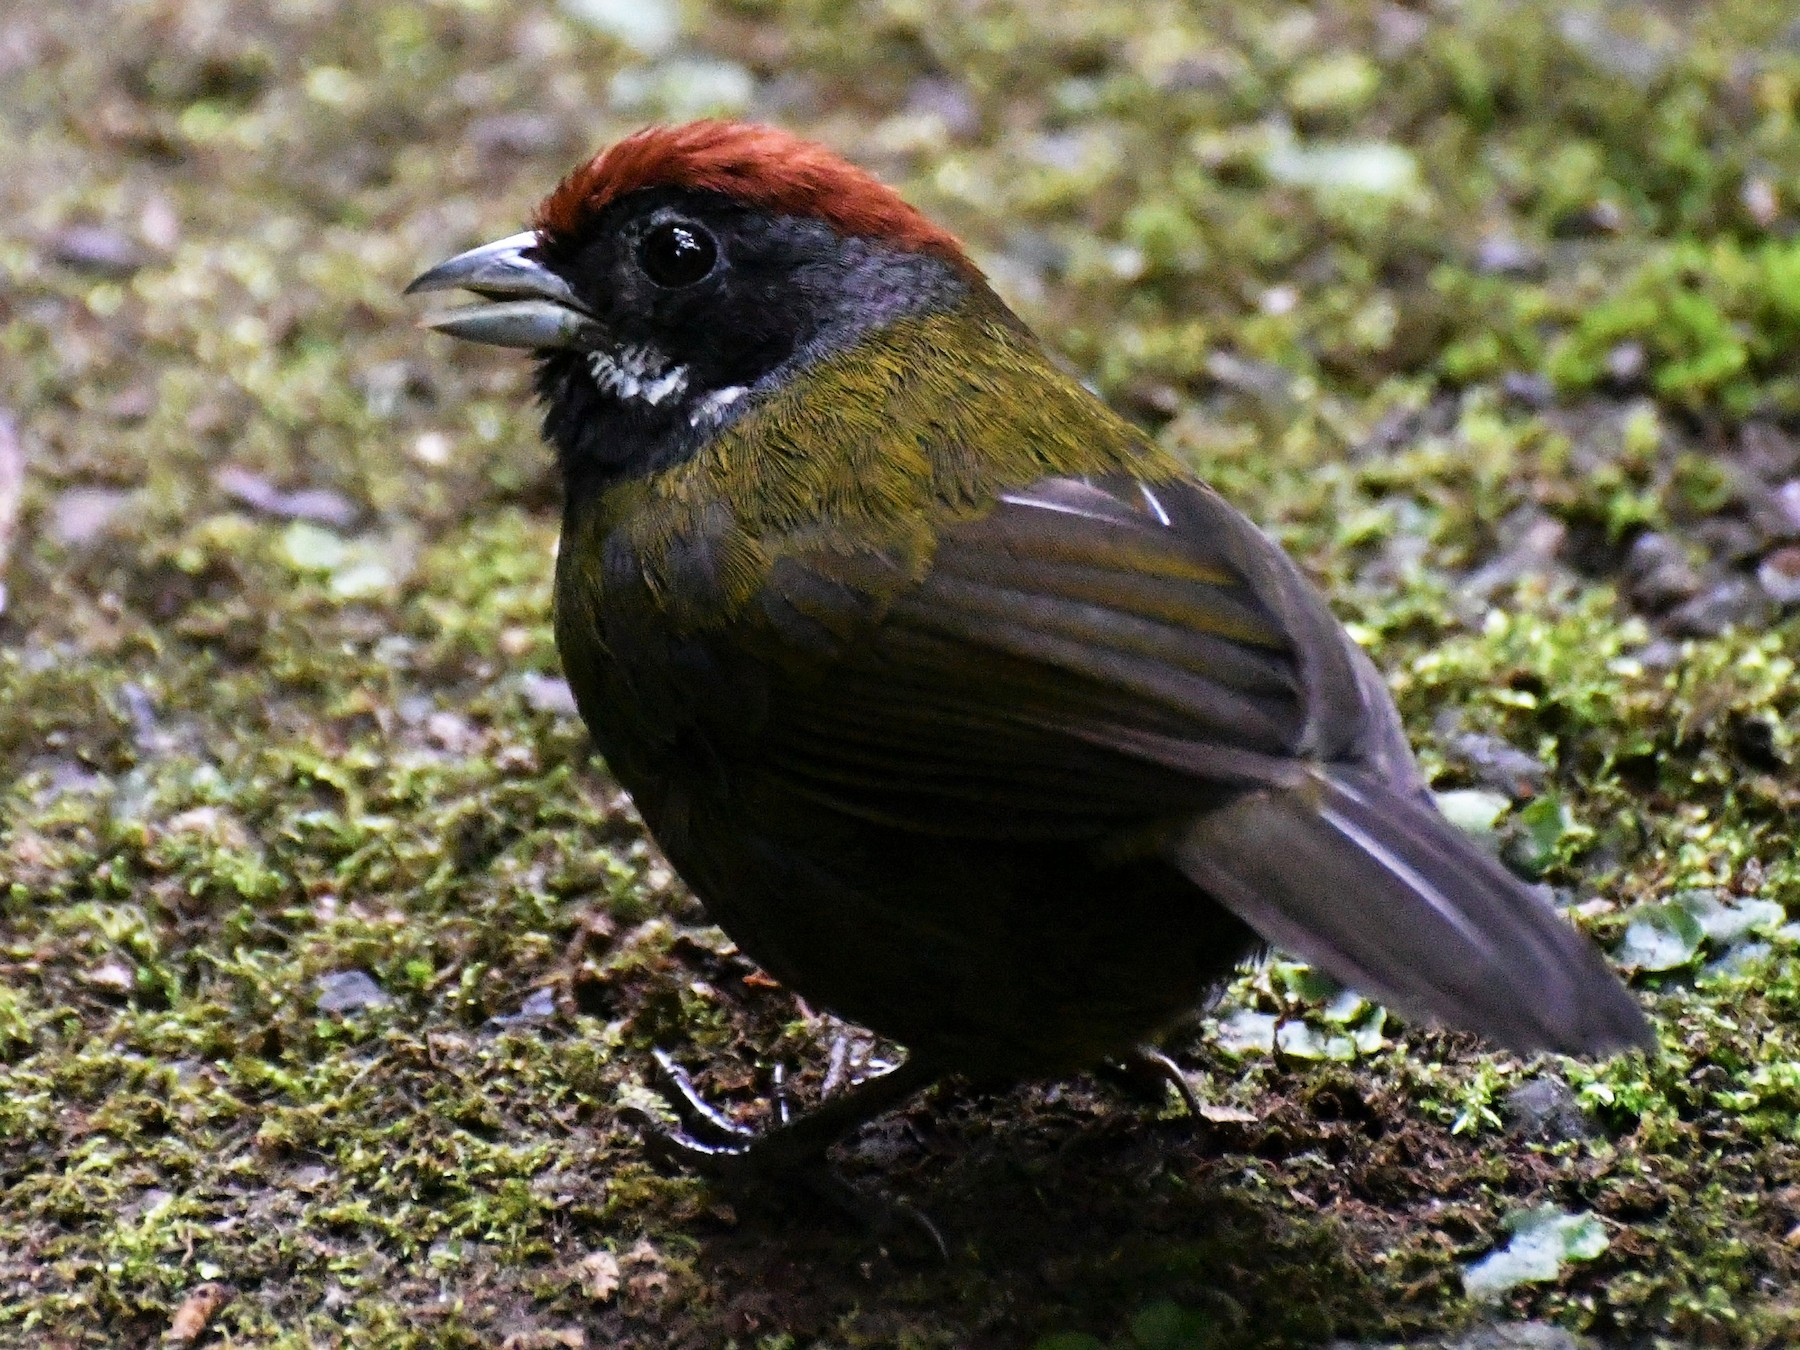 Sooty-faced Finch - David W Foster